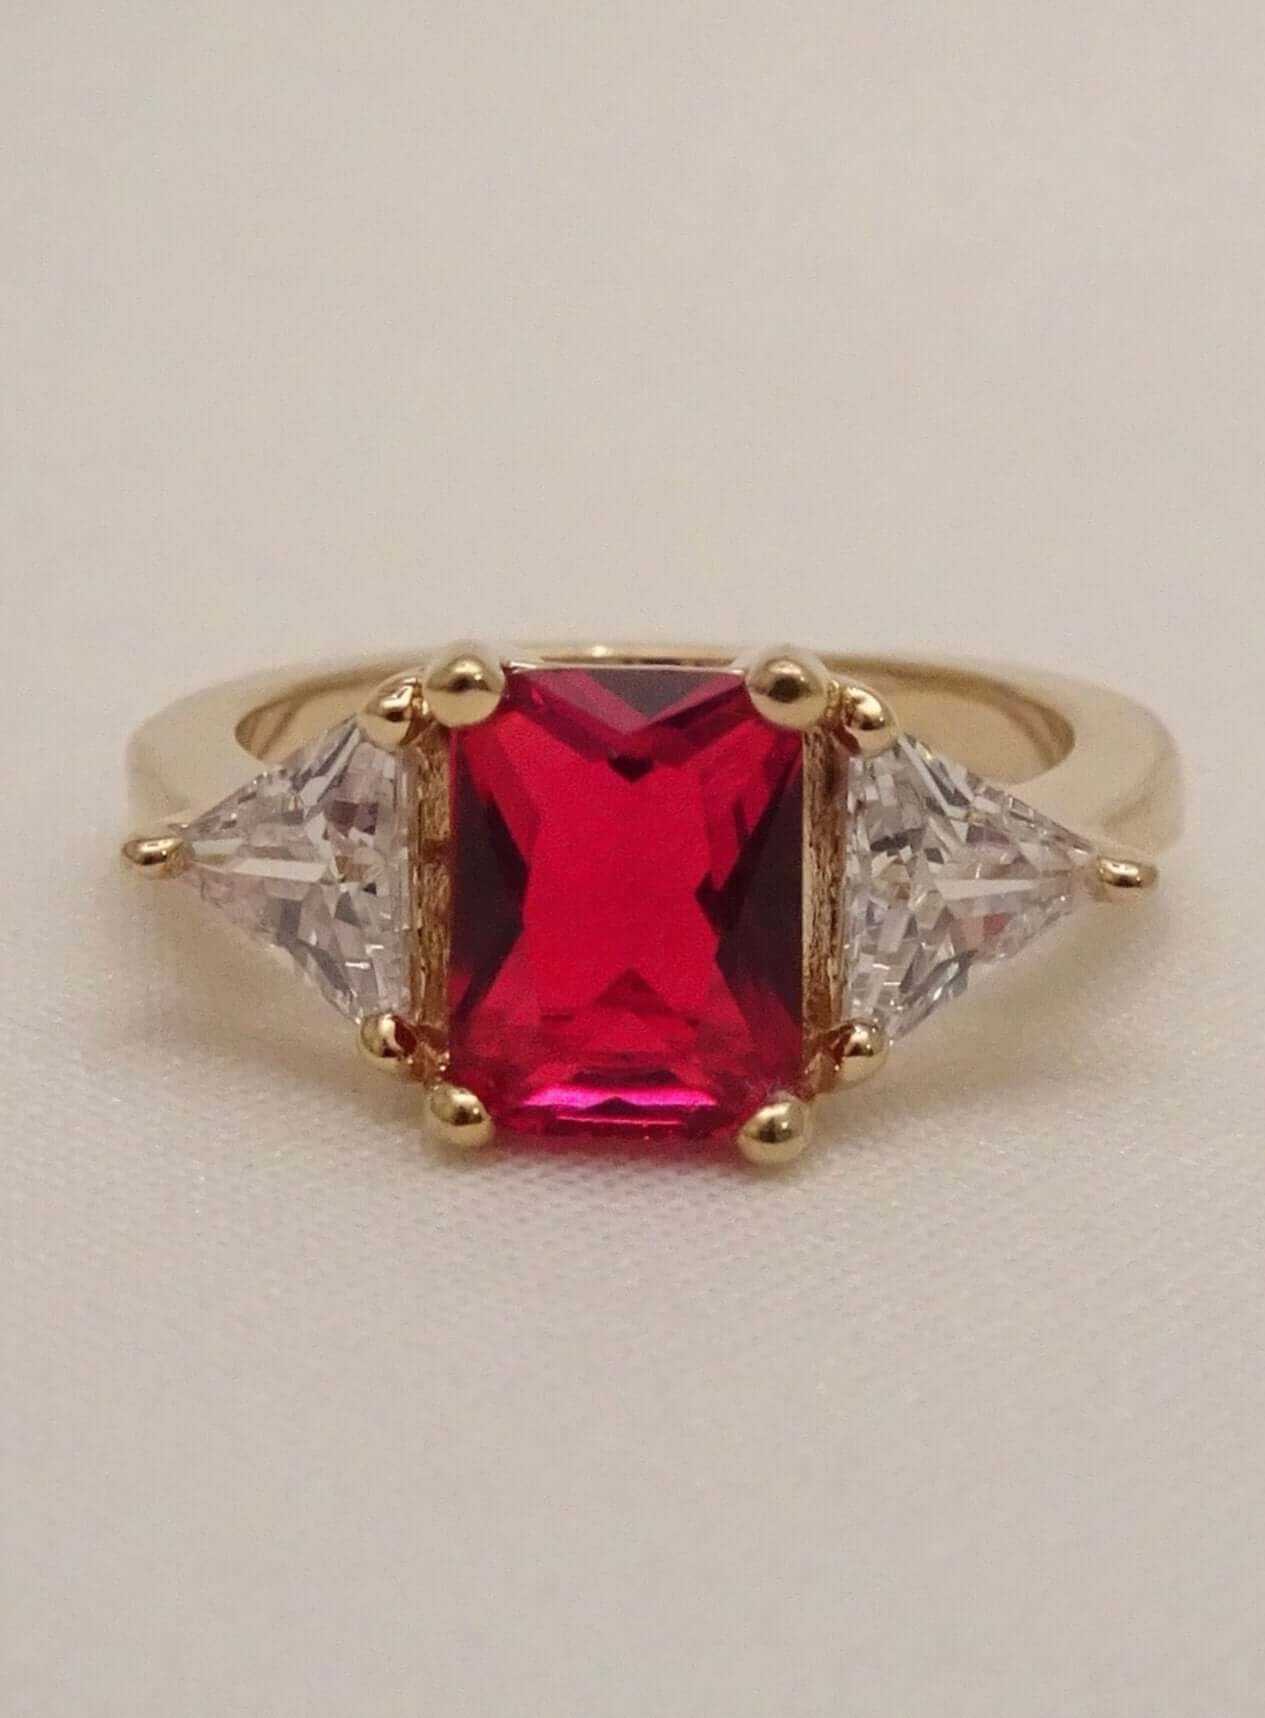 July birthstone rings, Ruby rings for women, ruby ring gold, red ruby ring, ruby birthstone ring, Birthstone rings, gold birthstone rings, birthstone rings for mom, mothers birthstone ring, birthstone rings for women